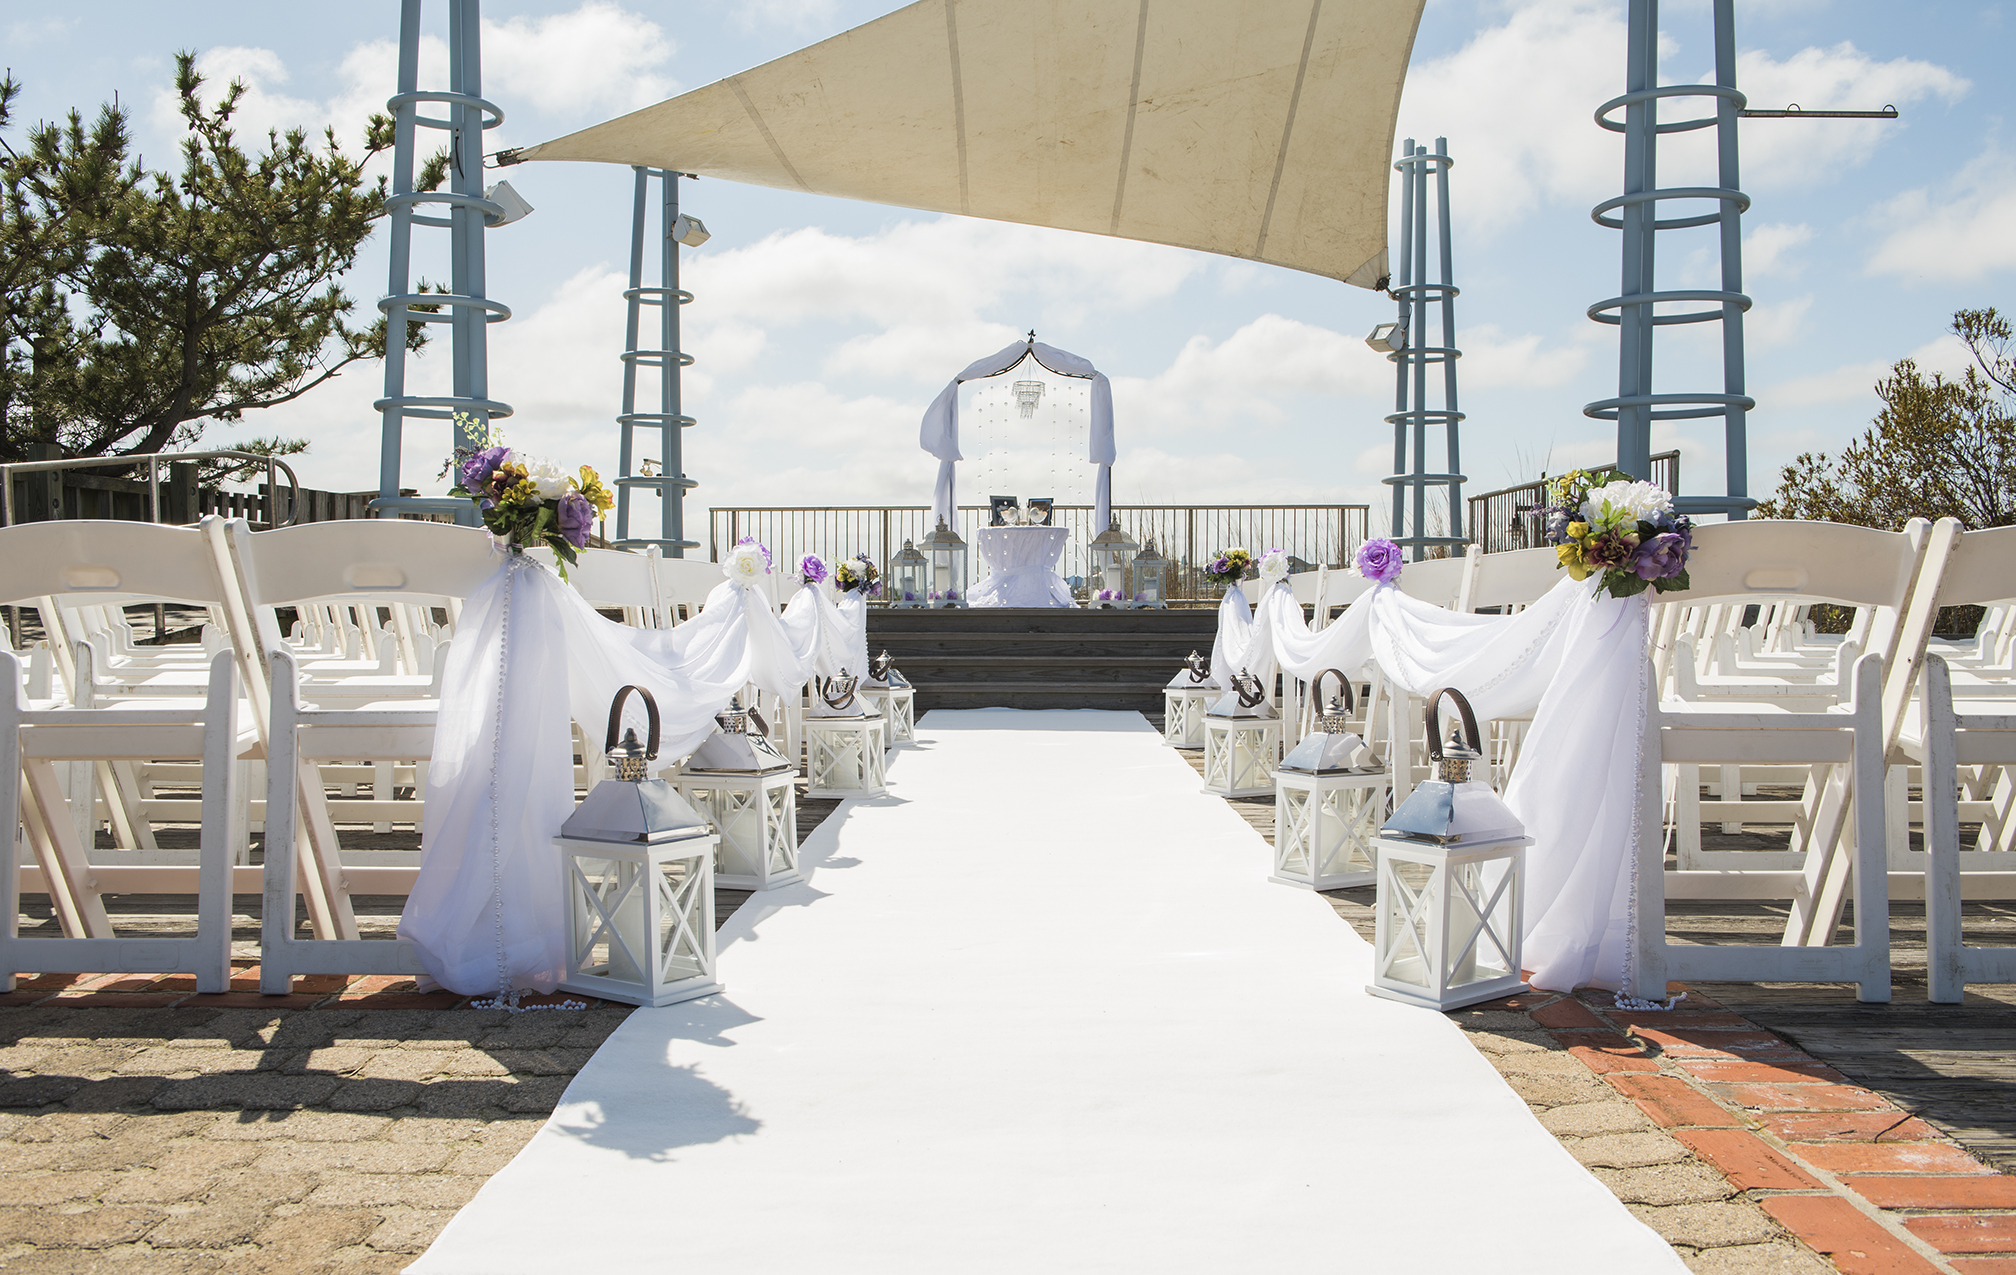 White voile can be used to create a beautiful isle.       Location Sunset Park                                                                   Photographer Dana Marie Photography